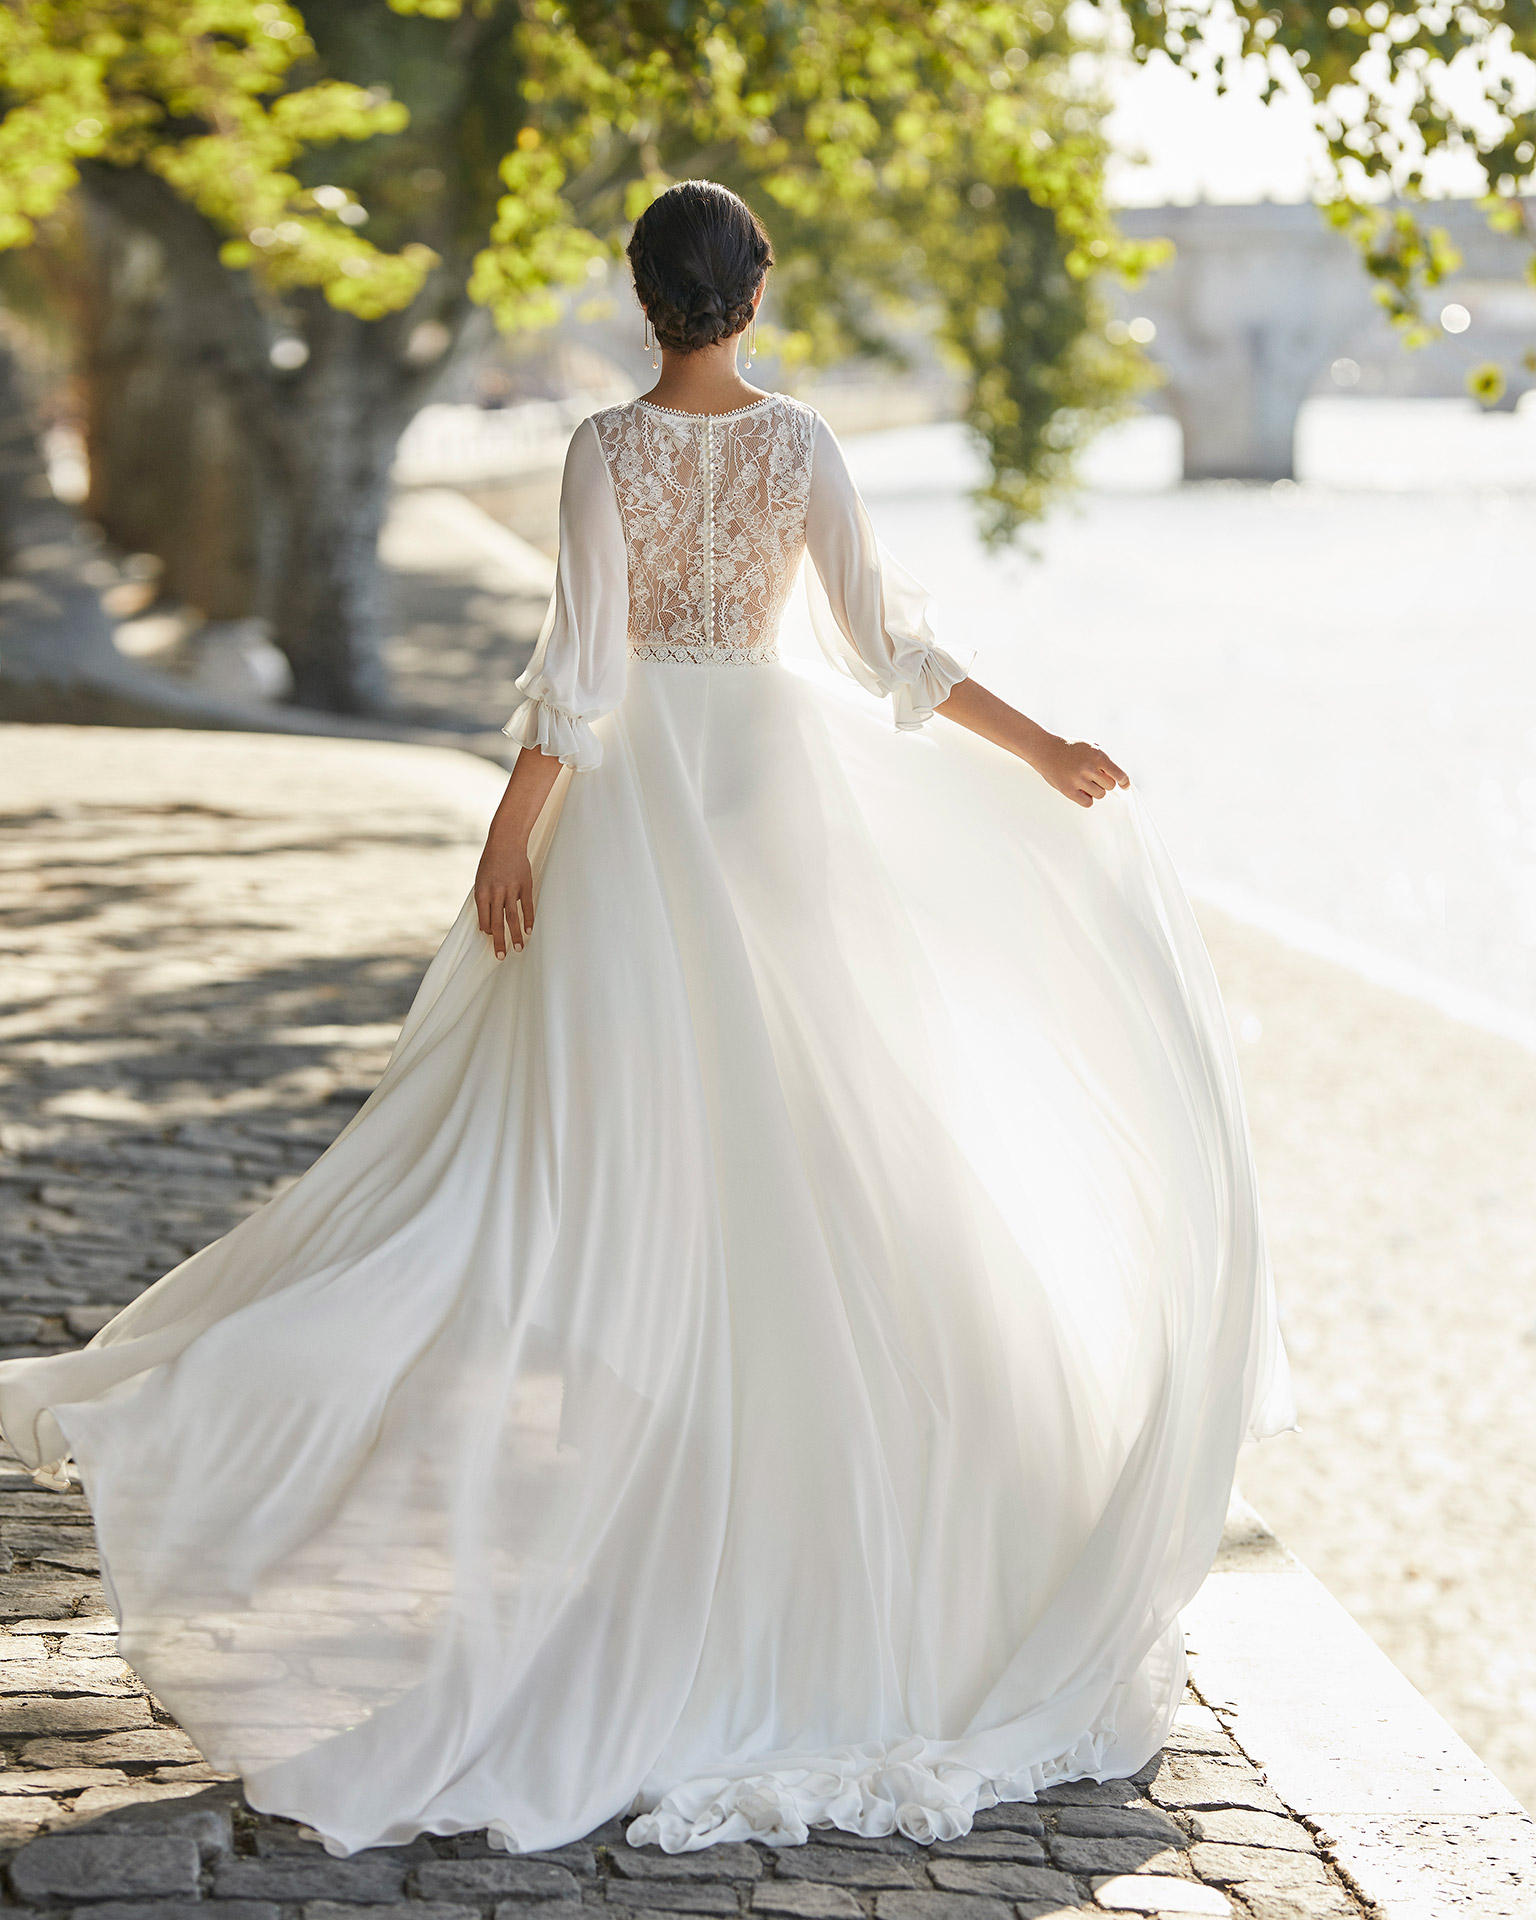 Wedding dress in chiffon. V-neckline in lace, bloused three-quarter sleeves in lace and closed back in lace with buttons. 2021 ALMANOVIA Collection.